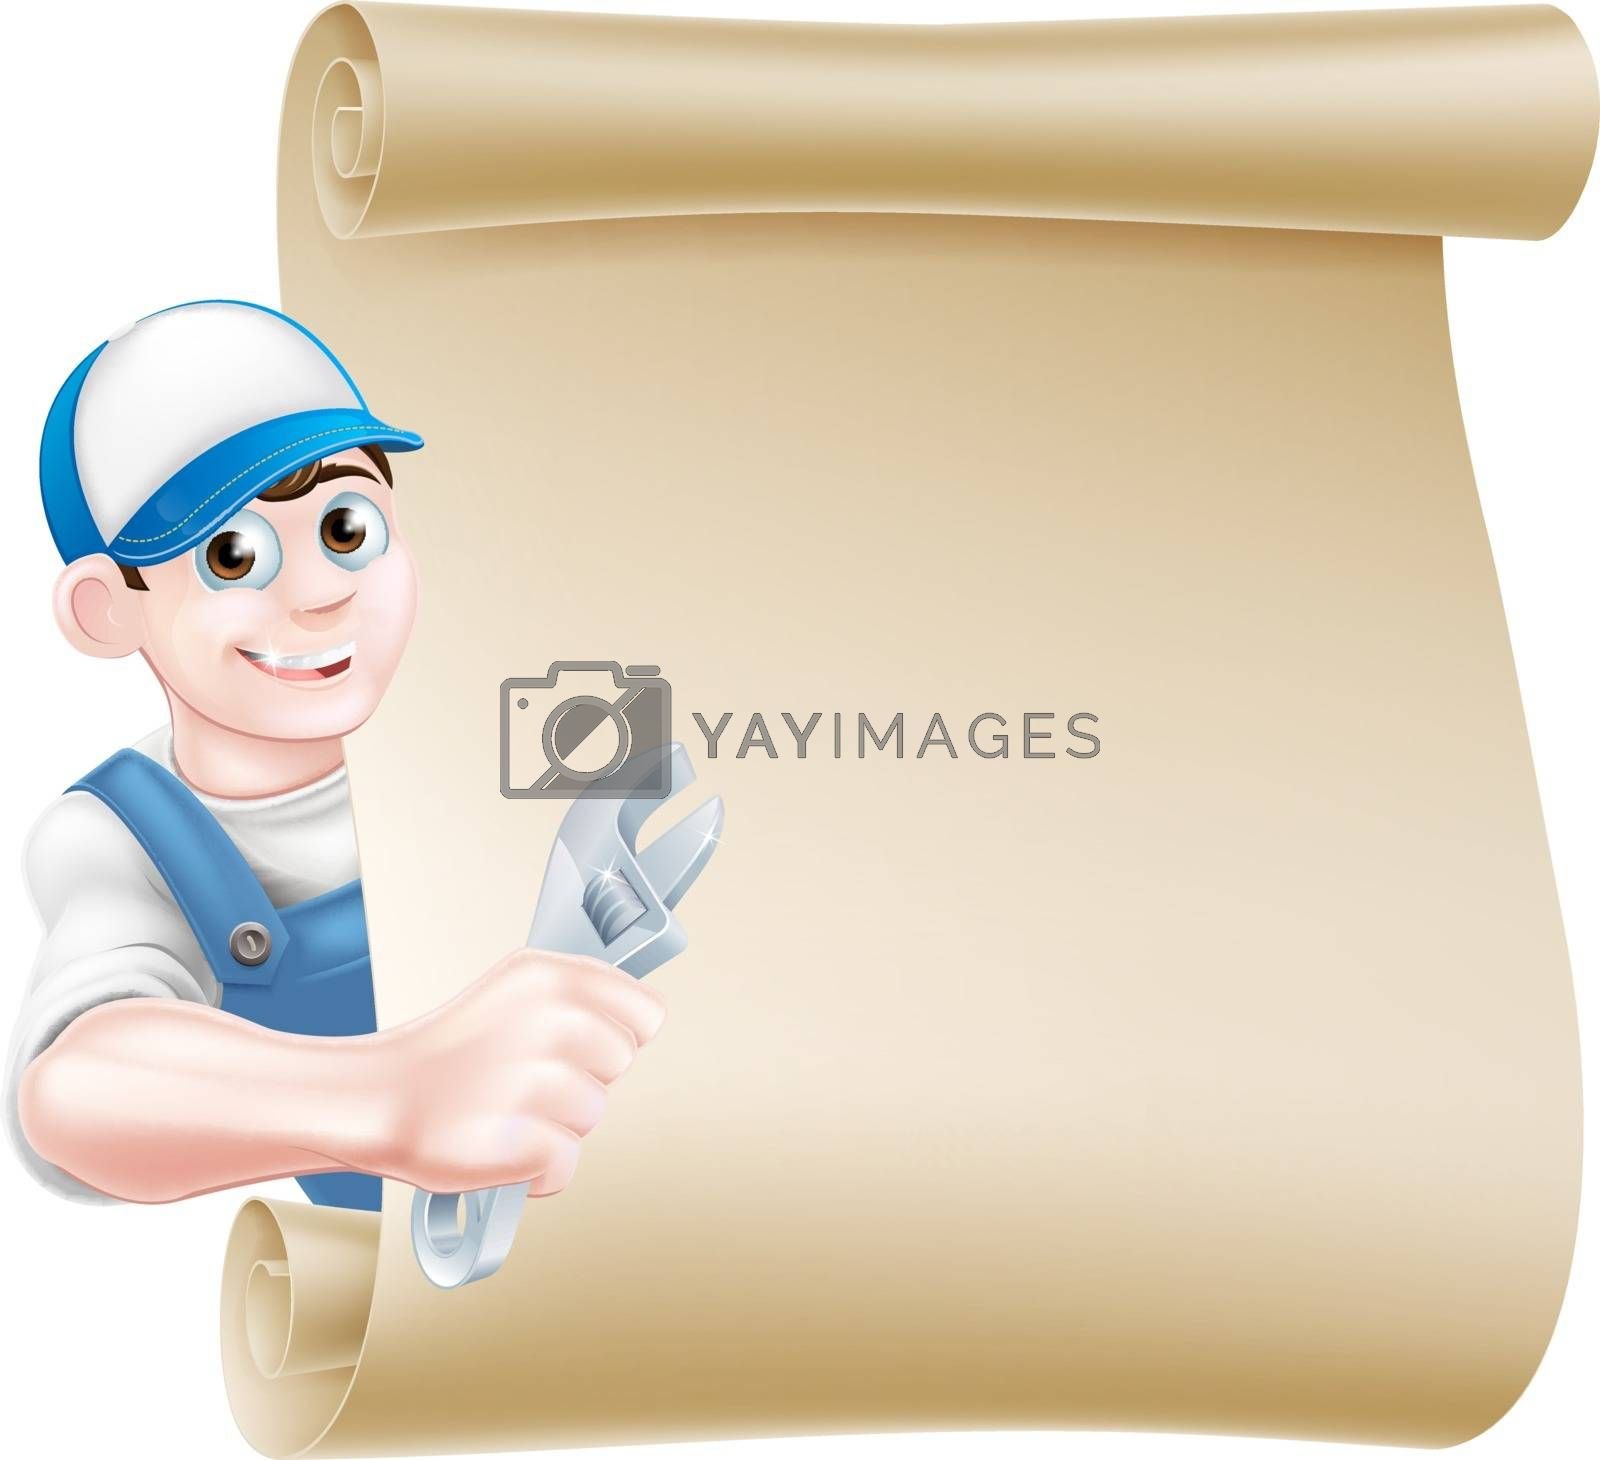 Cartoon plumber or auto repair mechanic service handyman worker man holding a spanner or wrench scroll